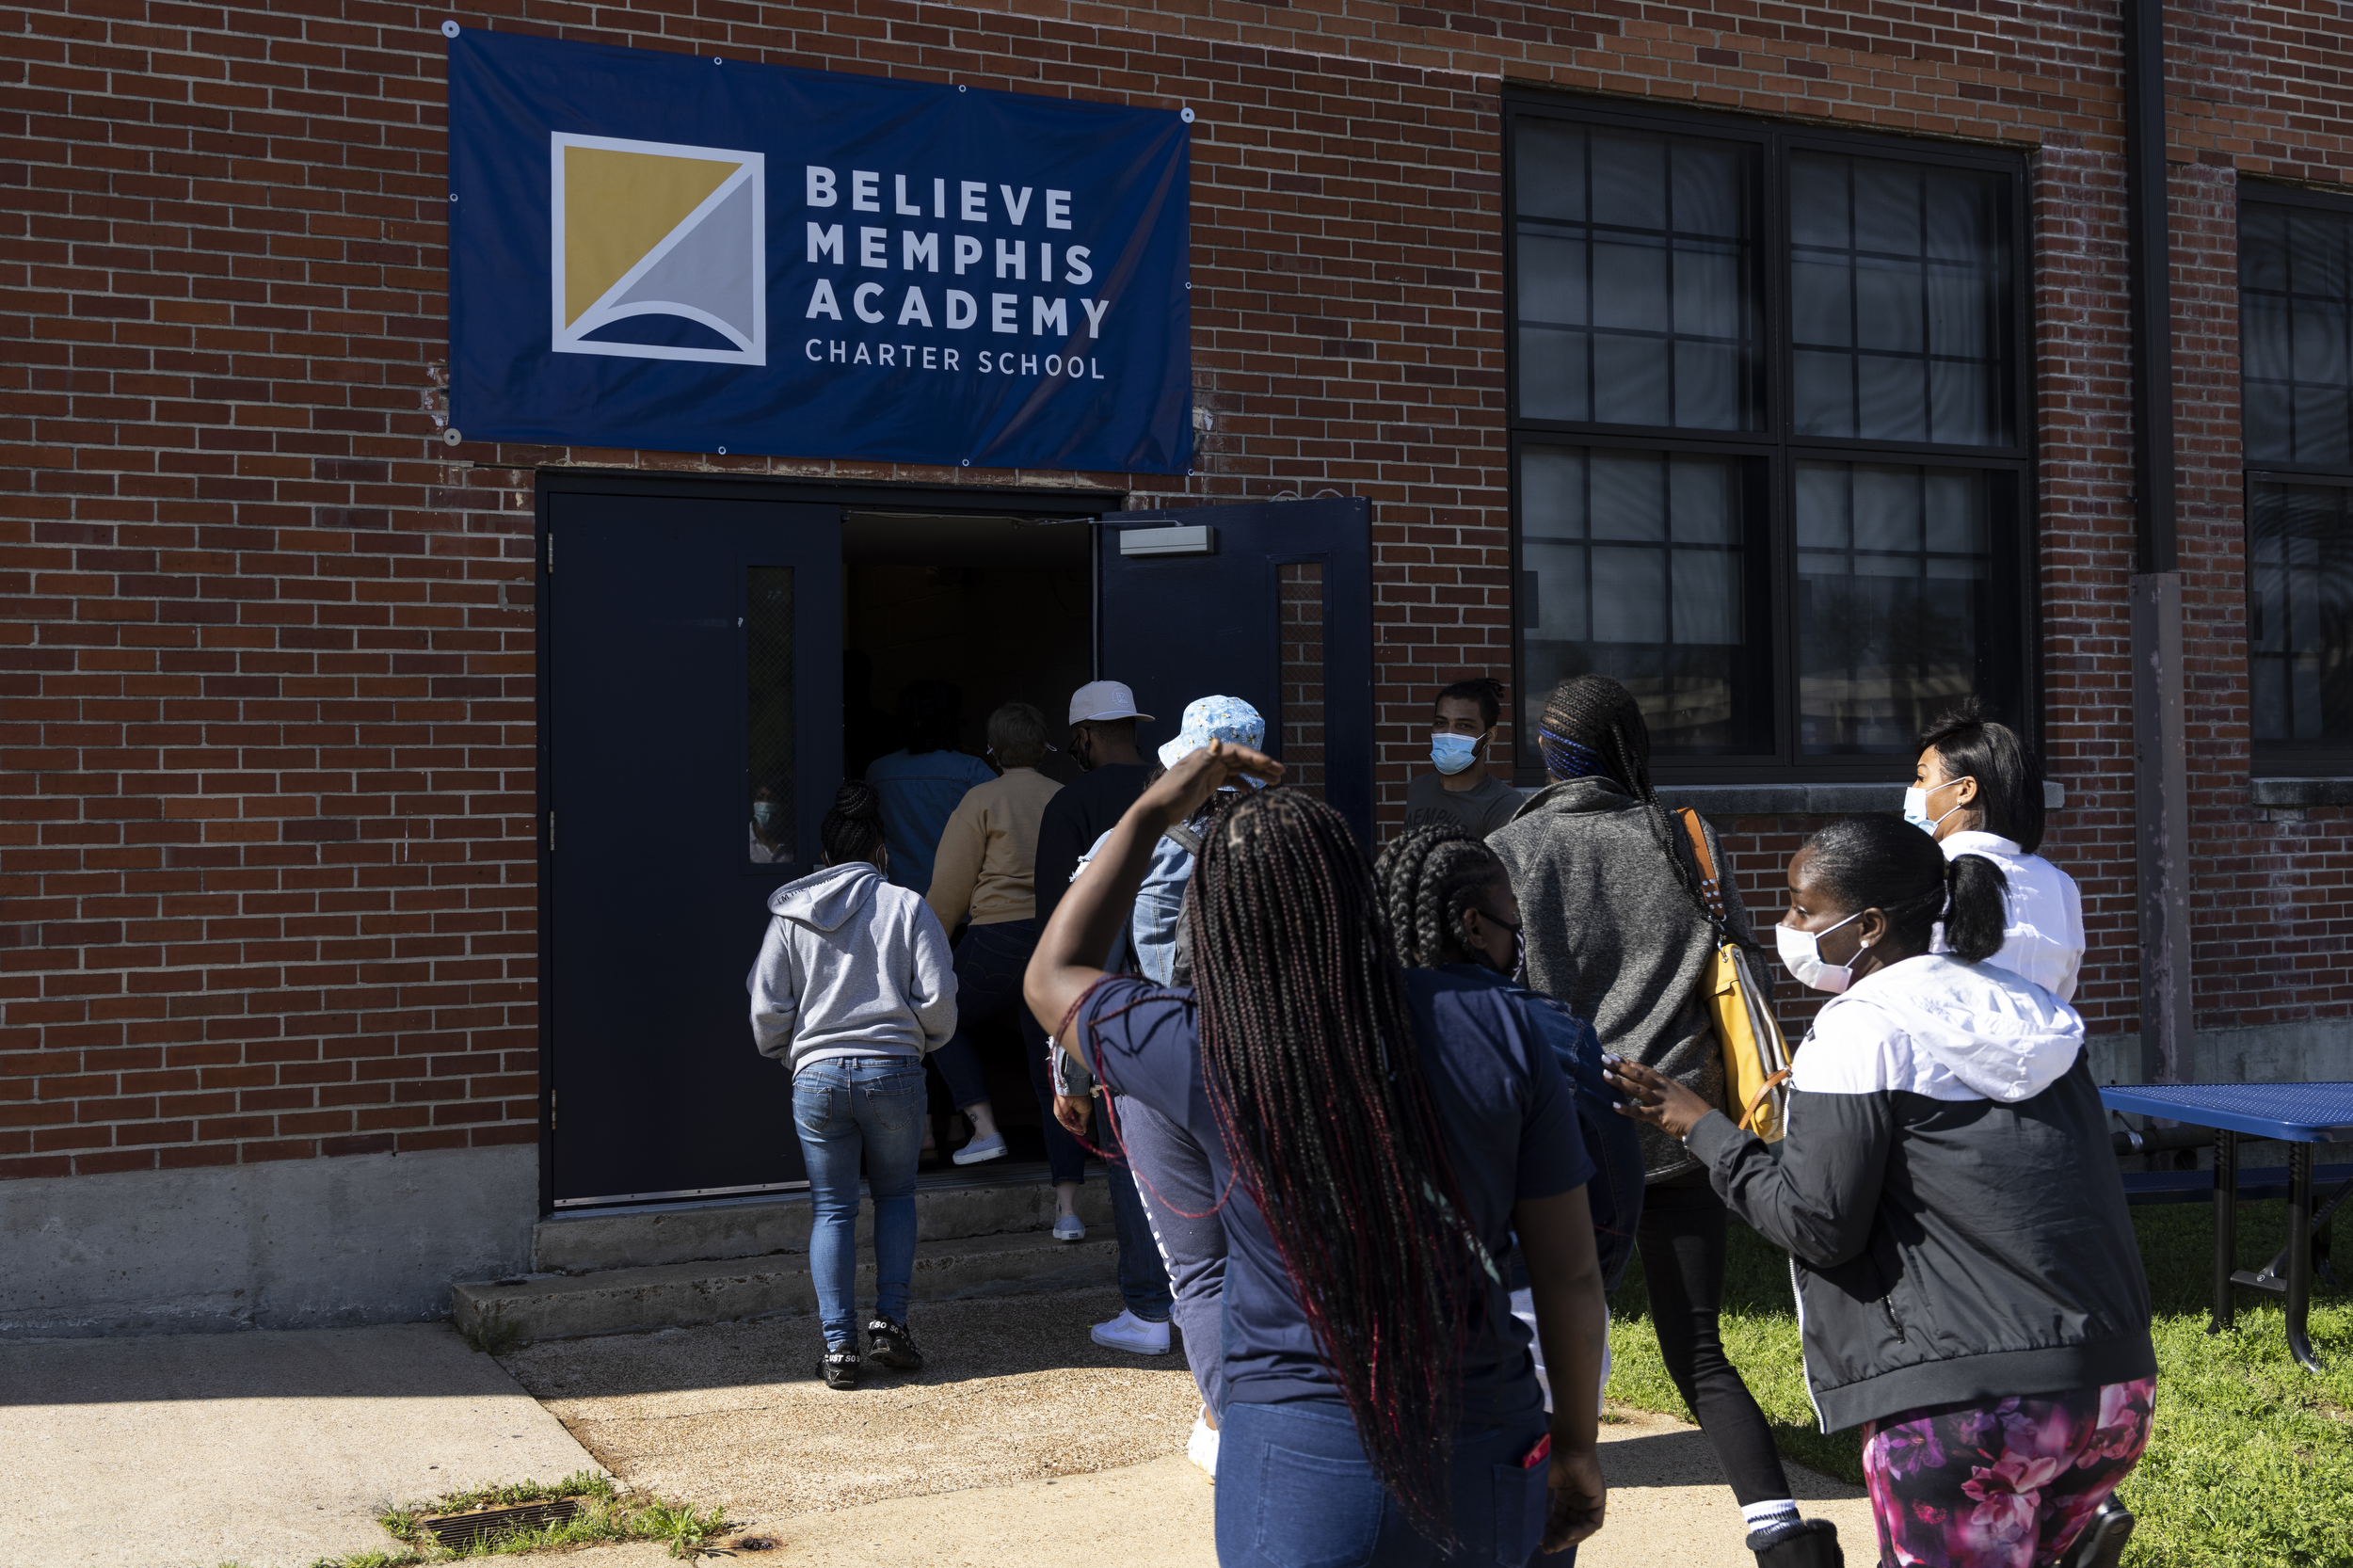 MEMPHIS, TN - April 15, 2021: The Believe Memphis Academy's Badger Postal Service program delivers meals and school supplies to the students of Believe Memphis Academy.